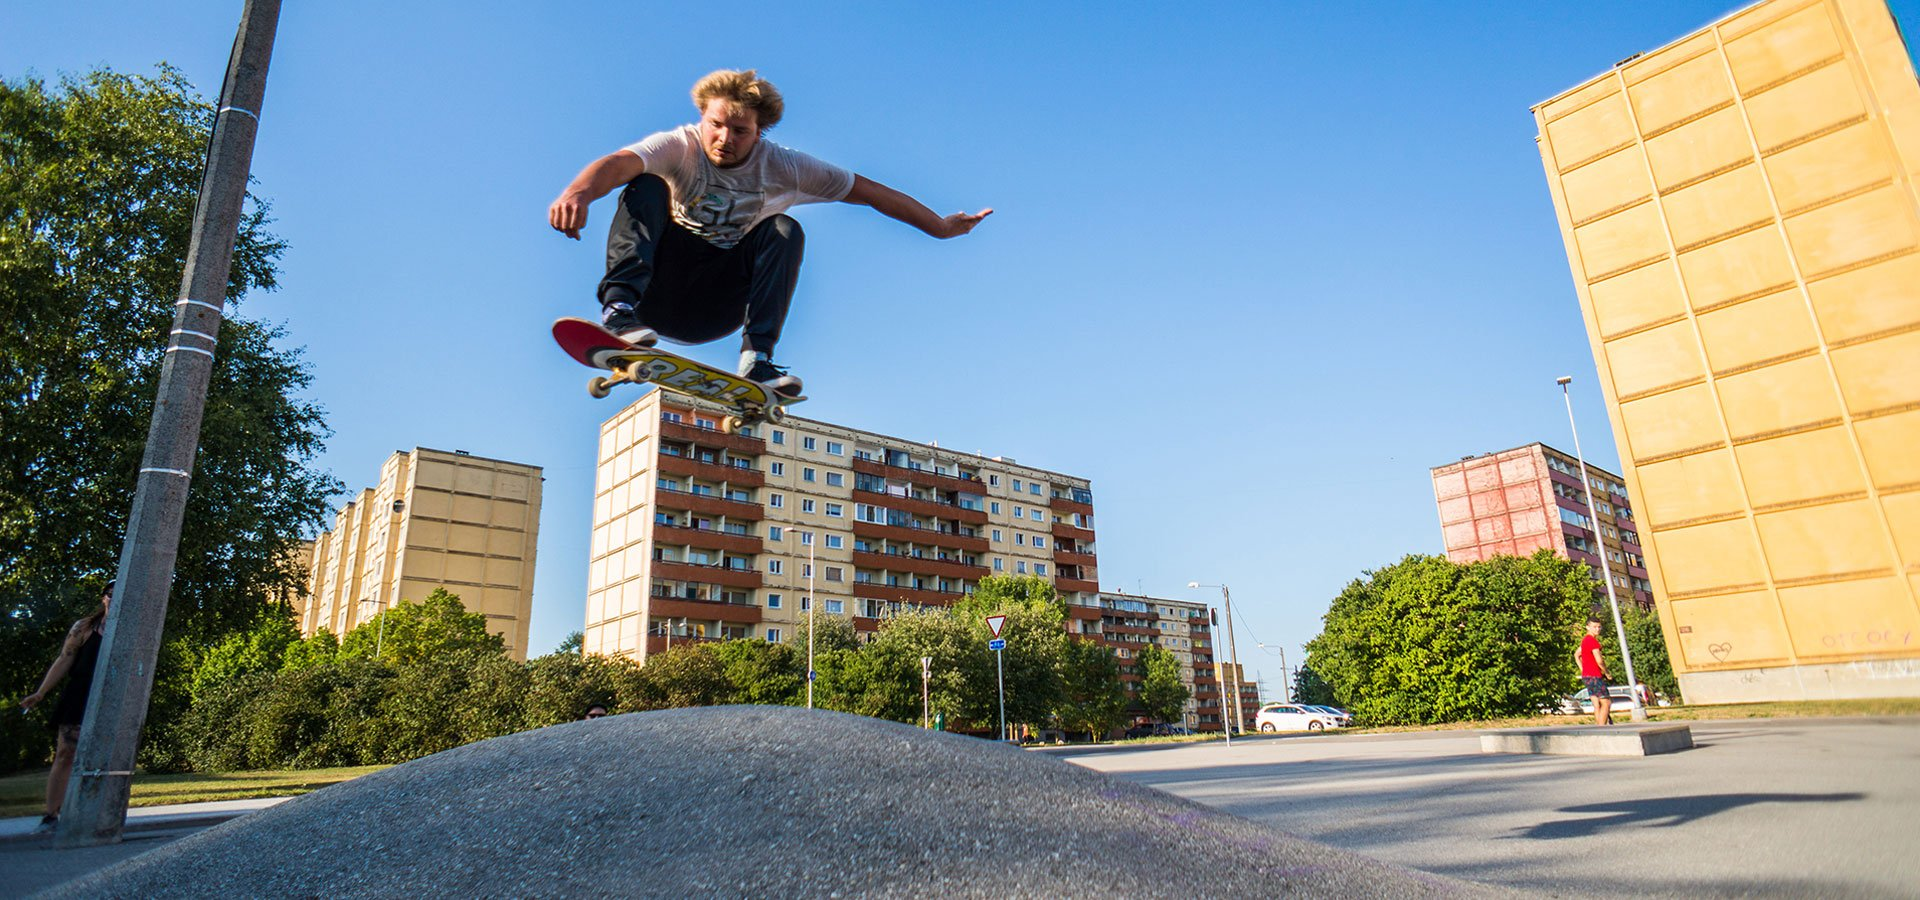 Meet the architect turning Estonia into a skateboarder's paradise